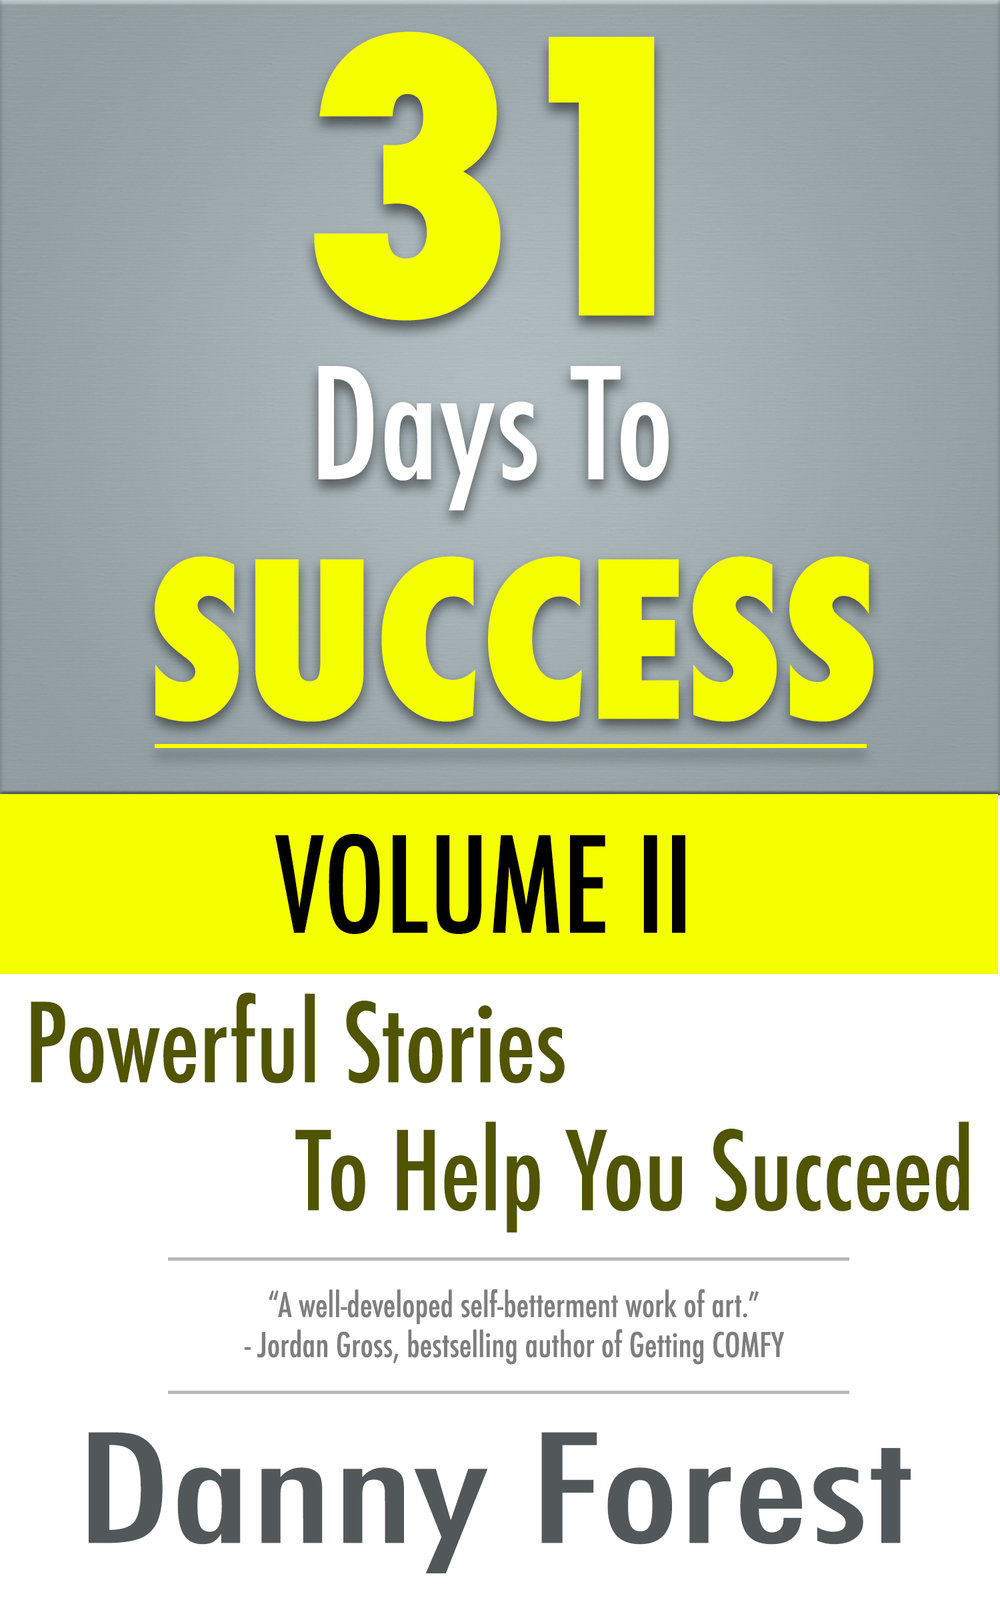 1. FREE PDF copy of 31 Days to Success Volume II - Receive a FREE PDF copy of 31 Days to Success Volume II on your first week. It's worth $9 on Amazon Kindle.